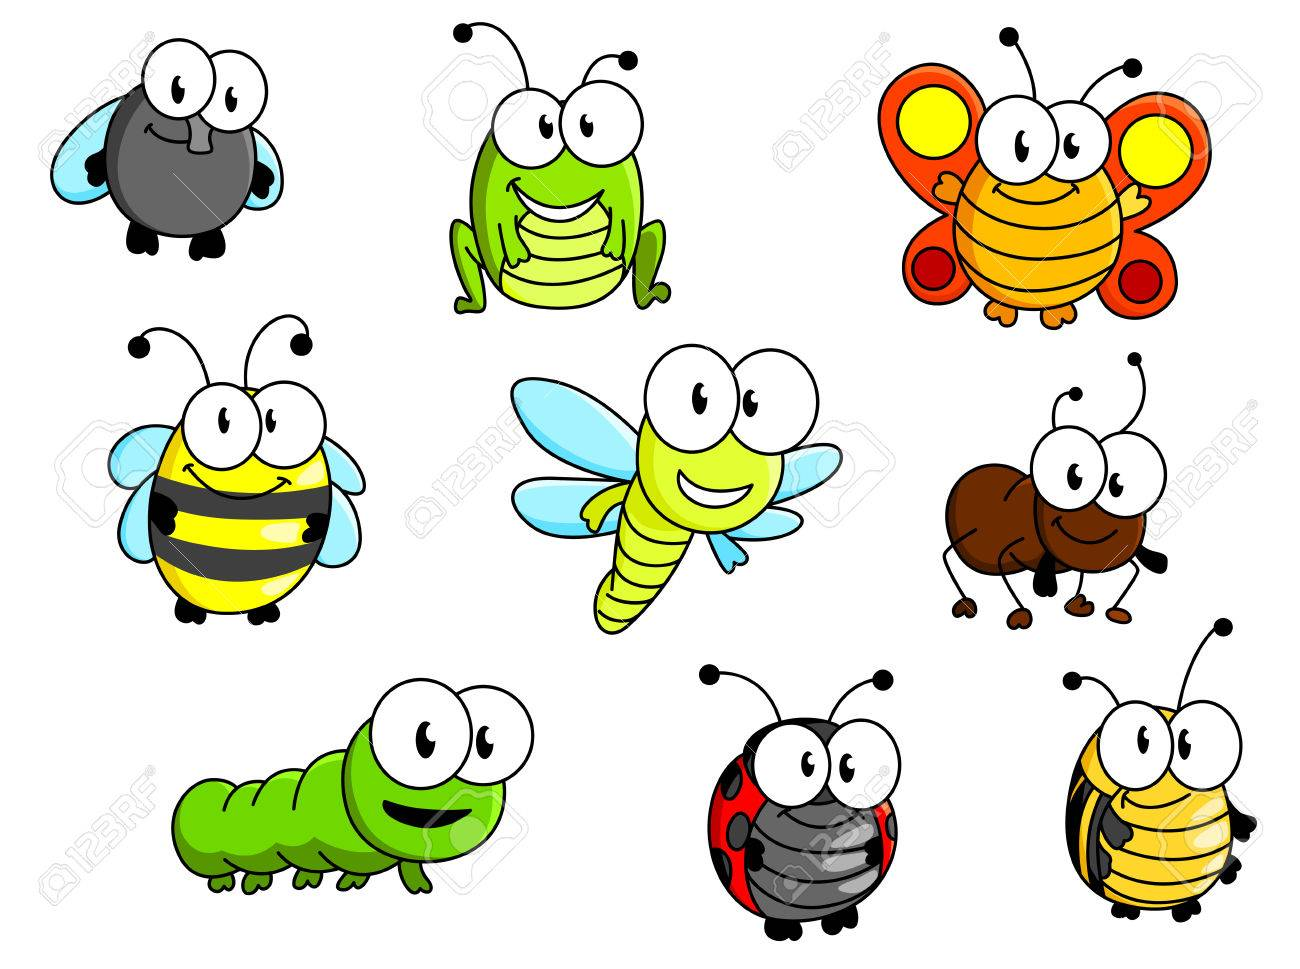 cartoon insects set isolated on white background for fairytale rh 123rf com cartoon insect superhero crossword cartoon insects clip art